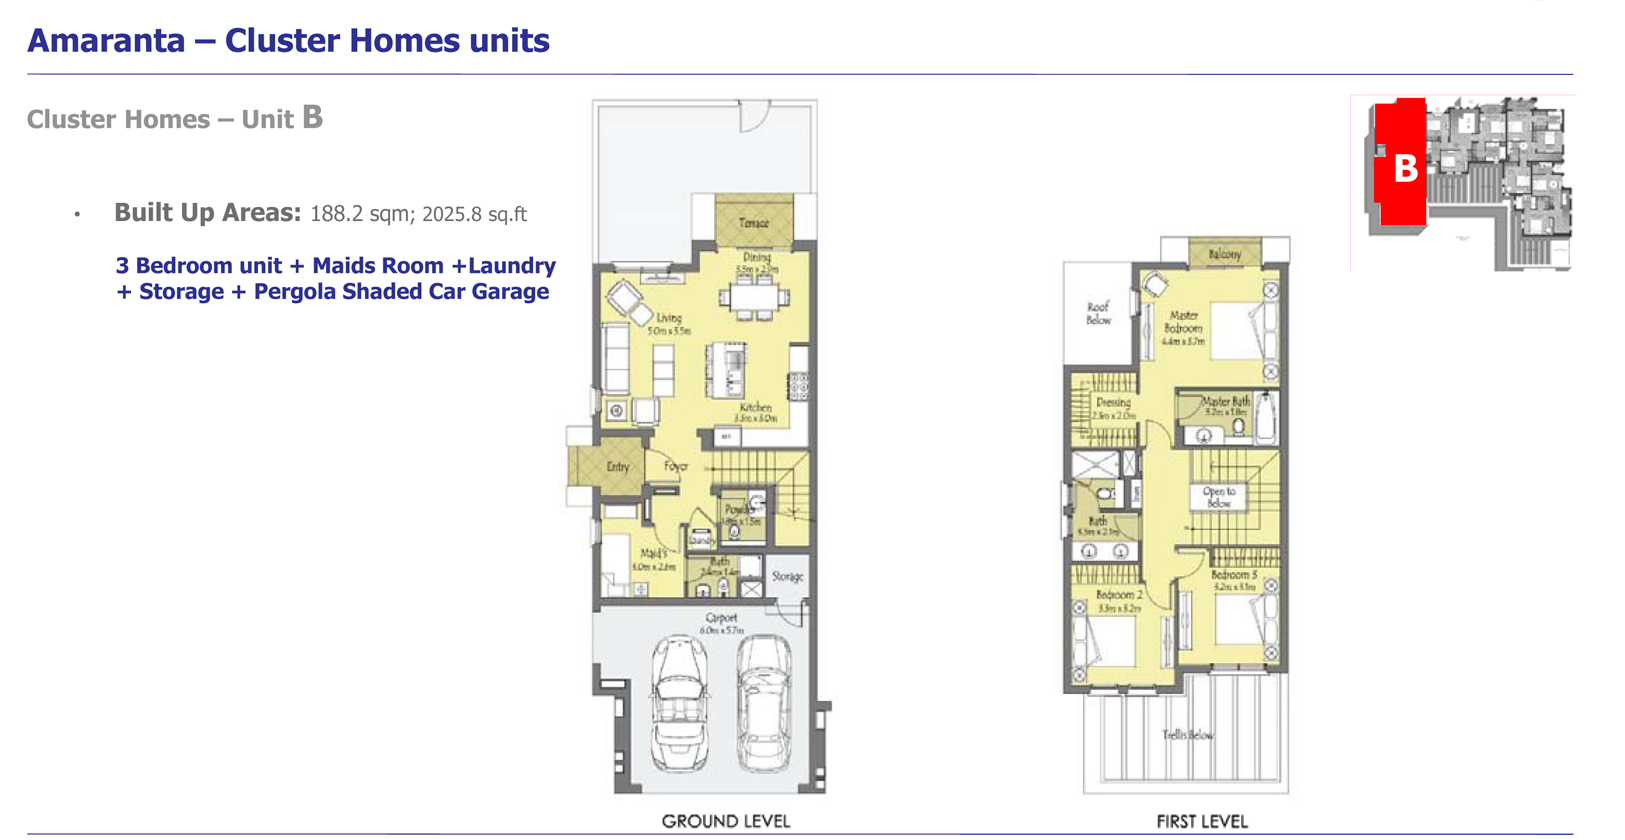 Phase 3 - Cluster Homes – Unit B